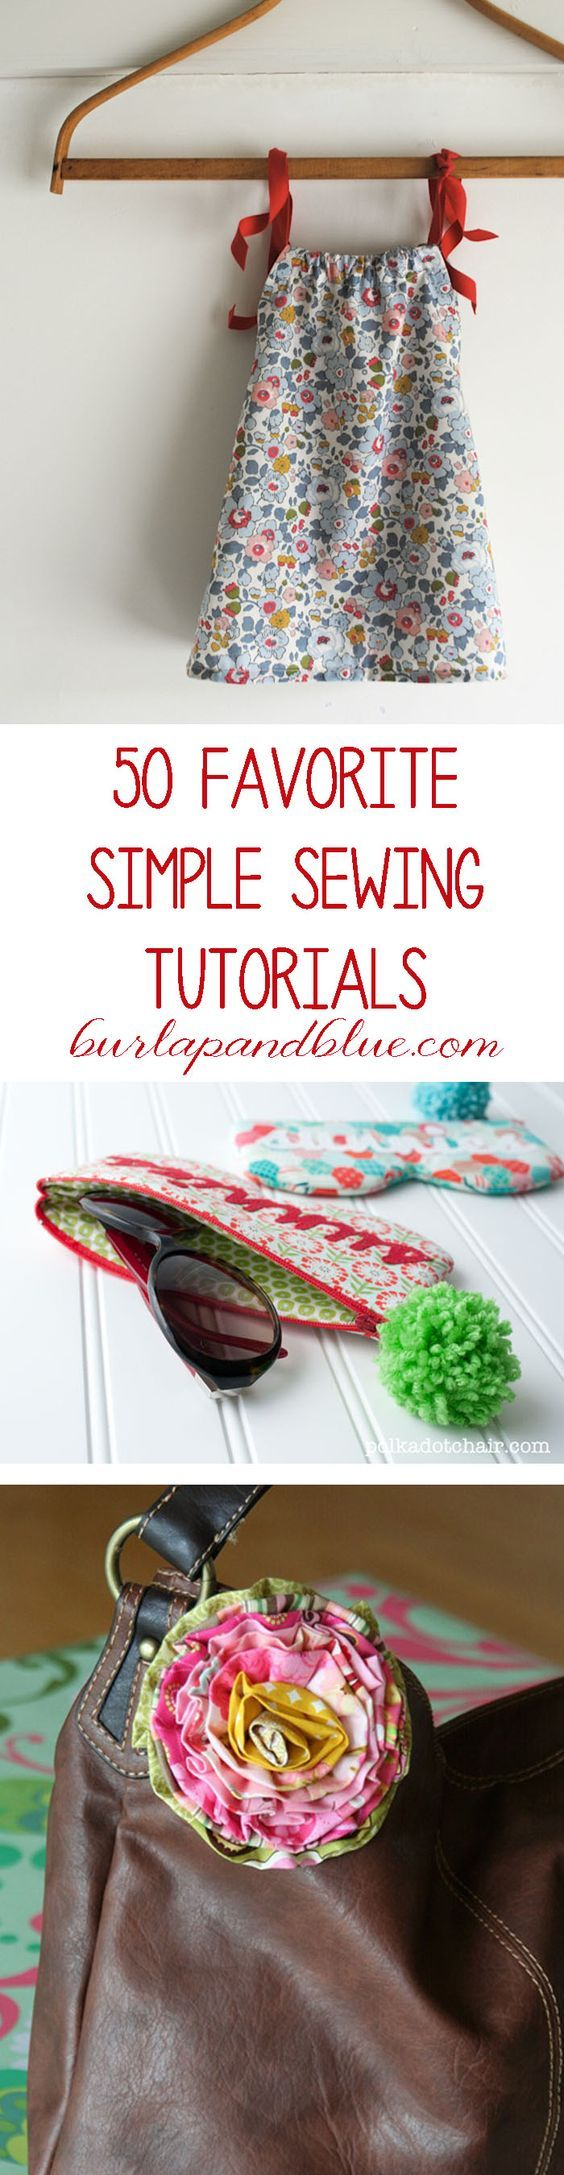 Favorite simple sewing crafts and tutorials! Inspirations for an evening or weekend project.